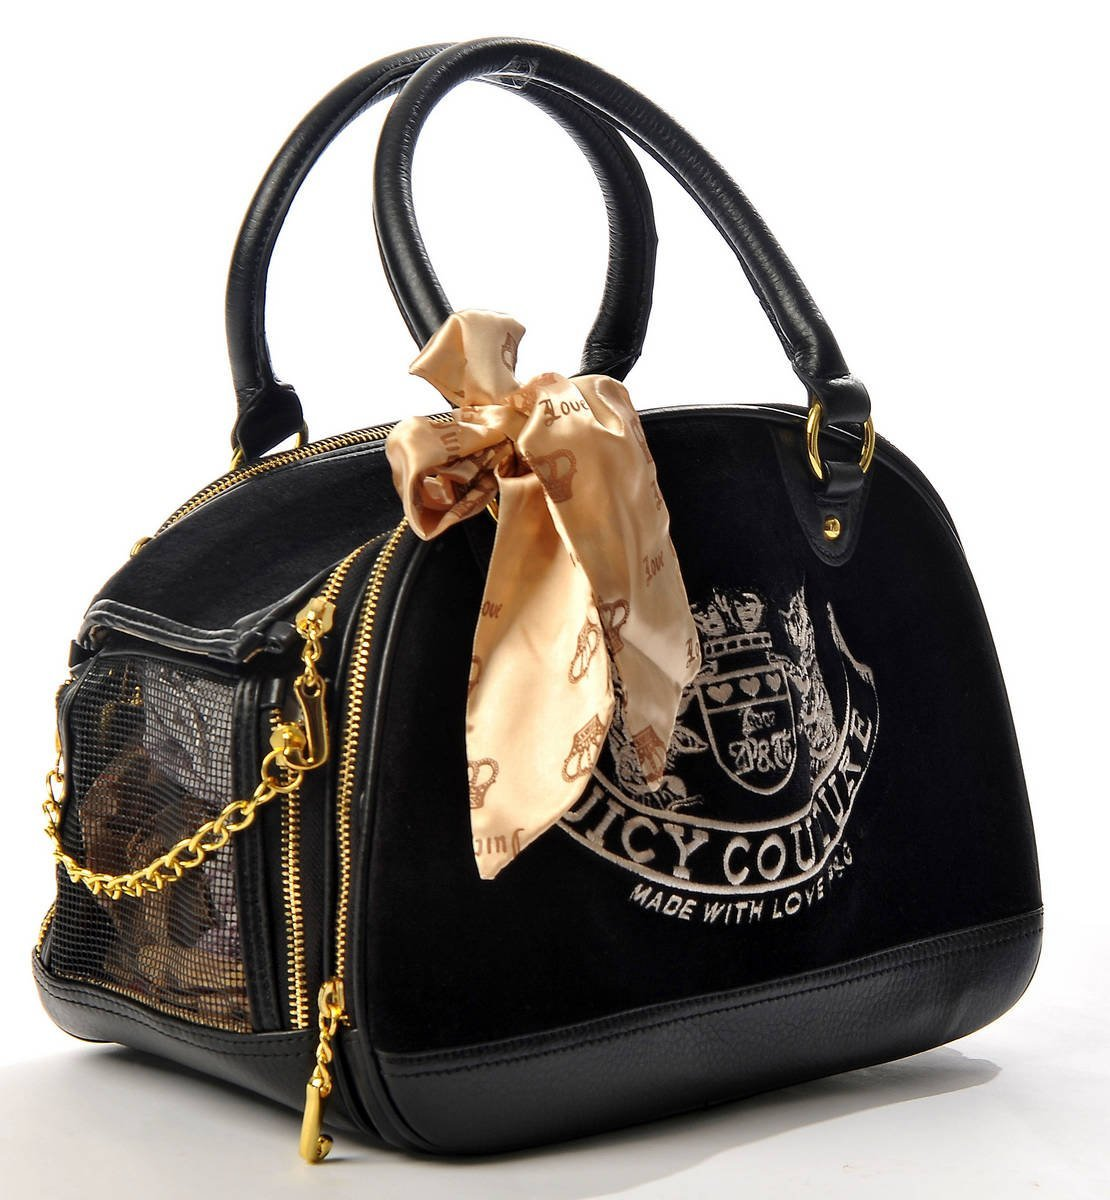 juicy couture handbag coach handbag outlet wholesale handbag